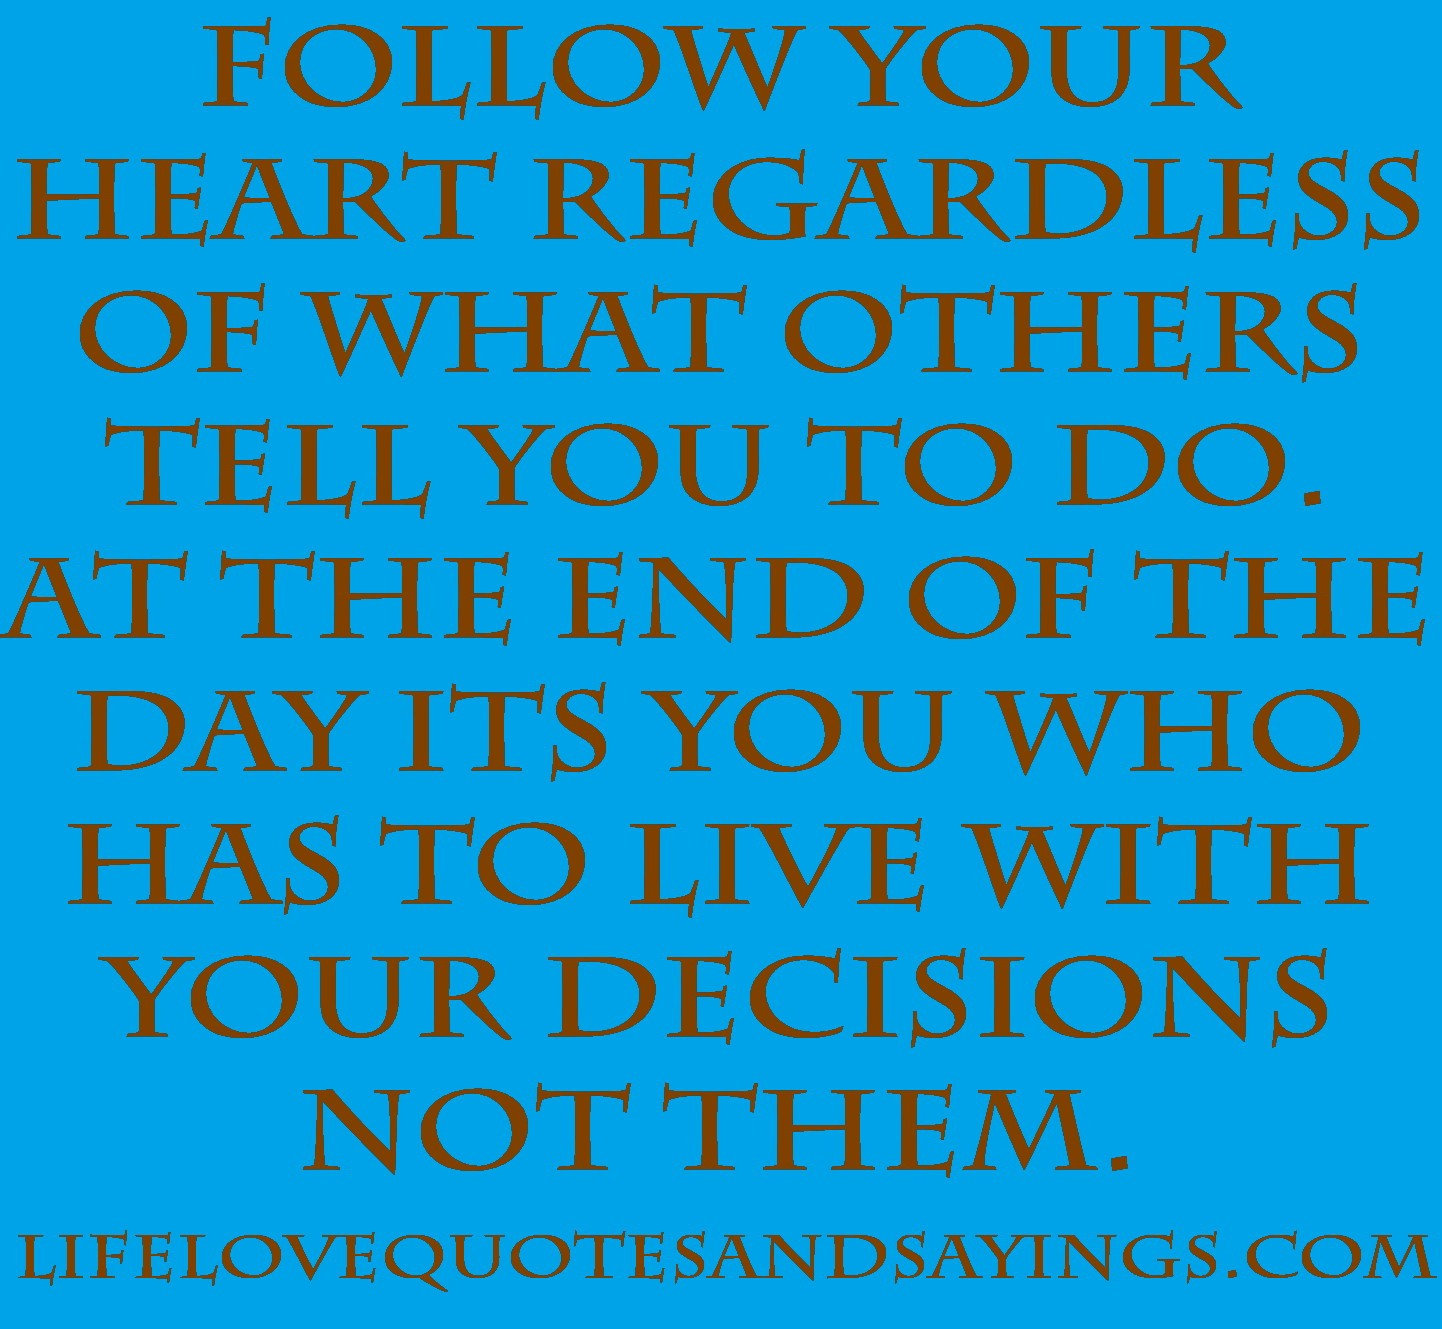 Quotes About The Heart: Follow Your Heart Quotes And Sayings. QuotesGram